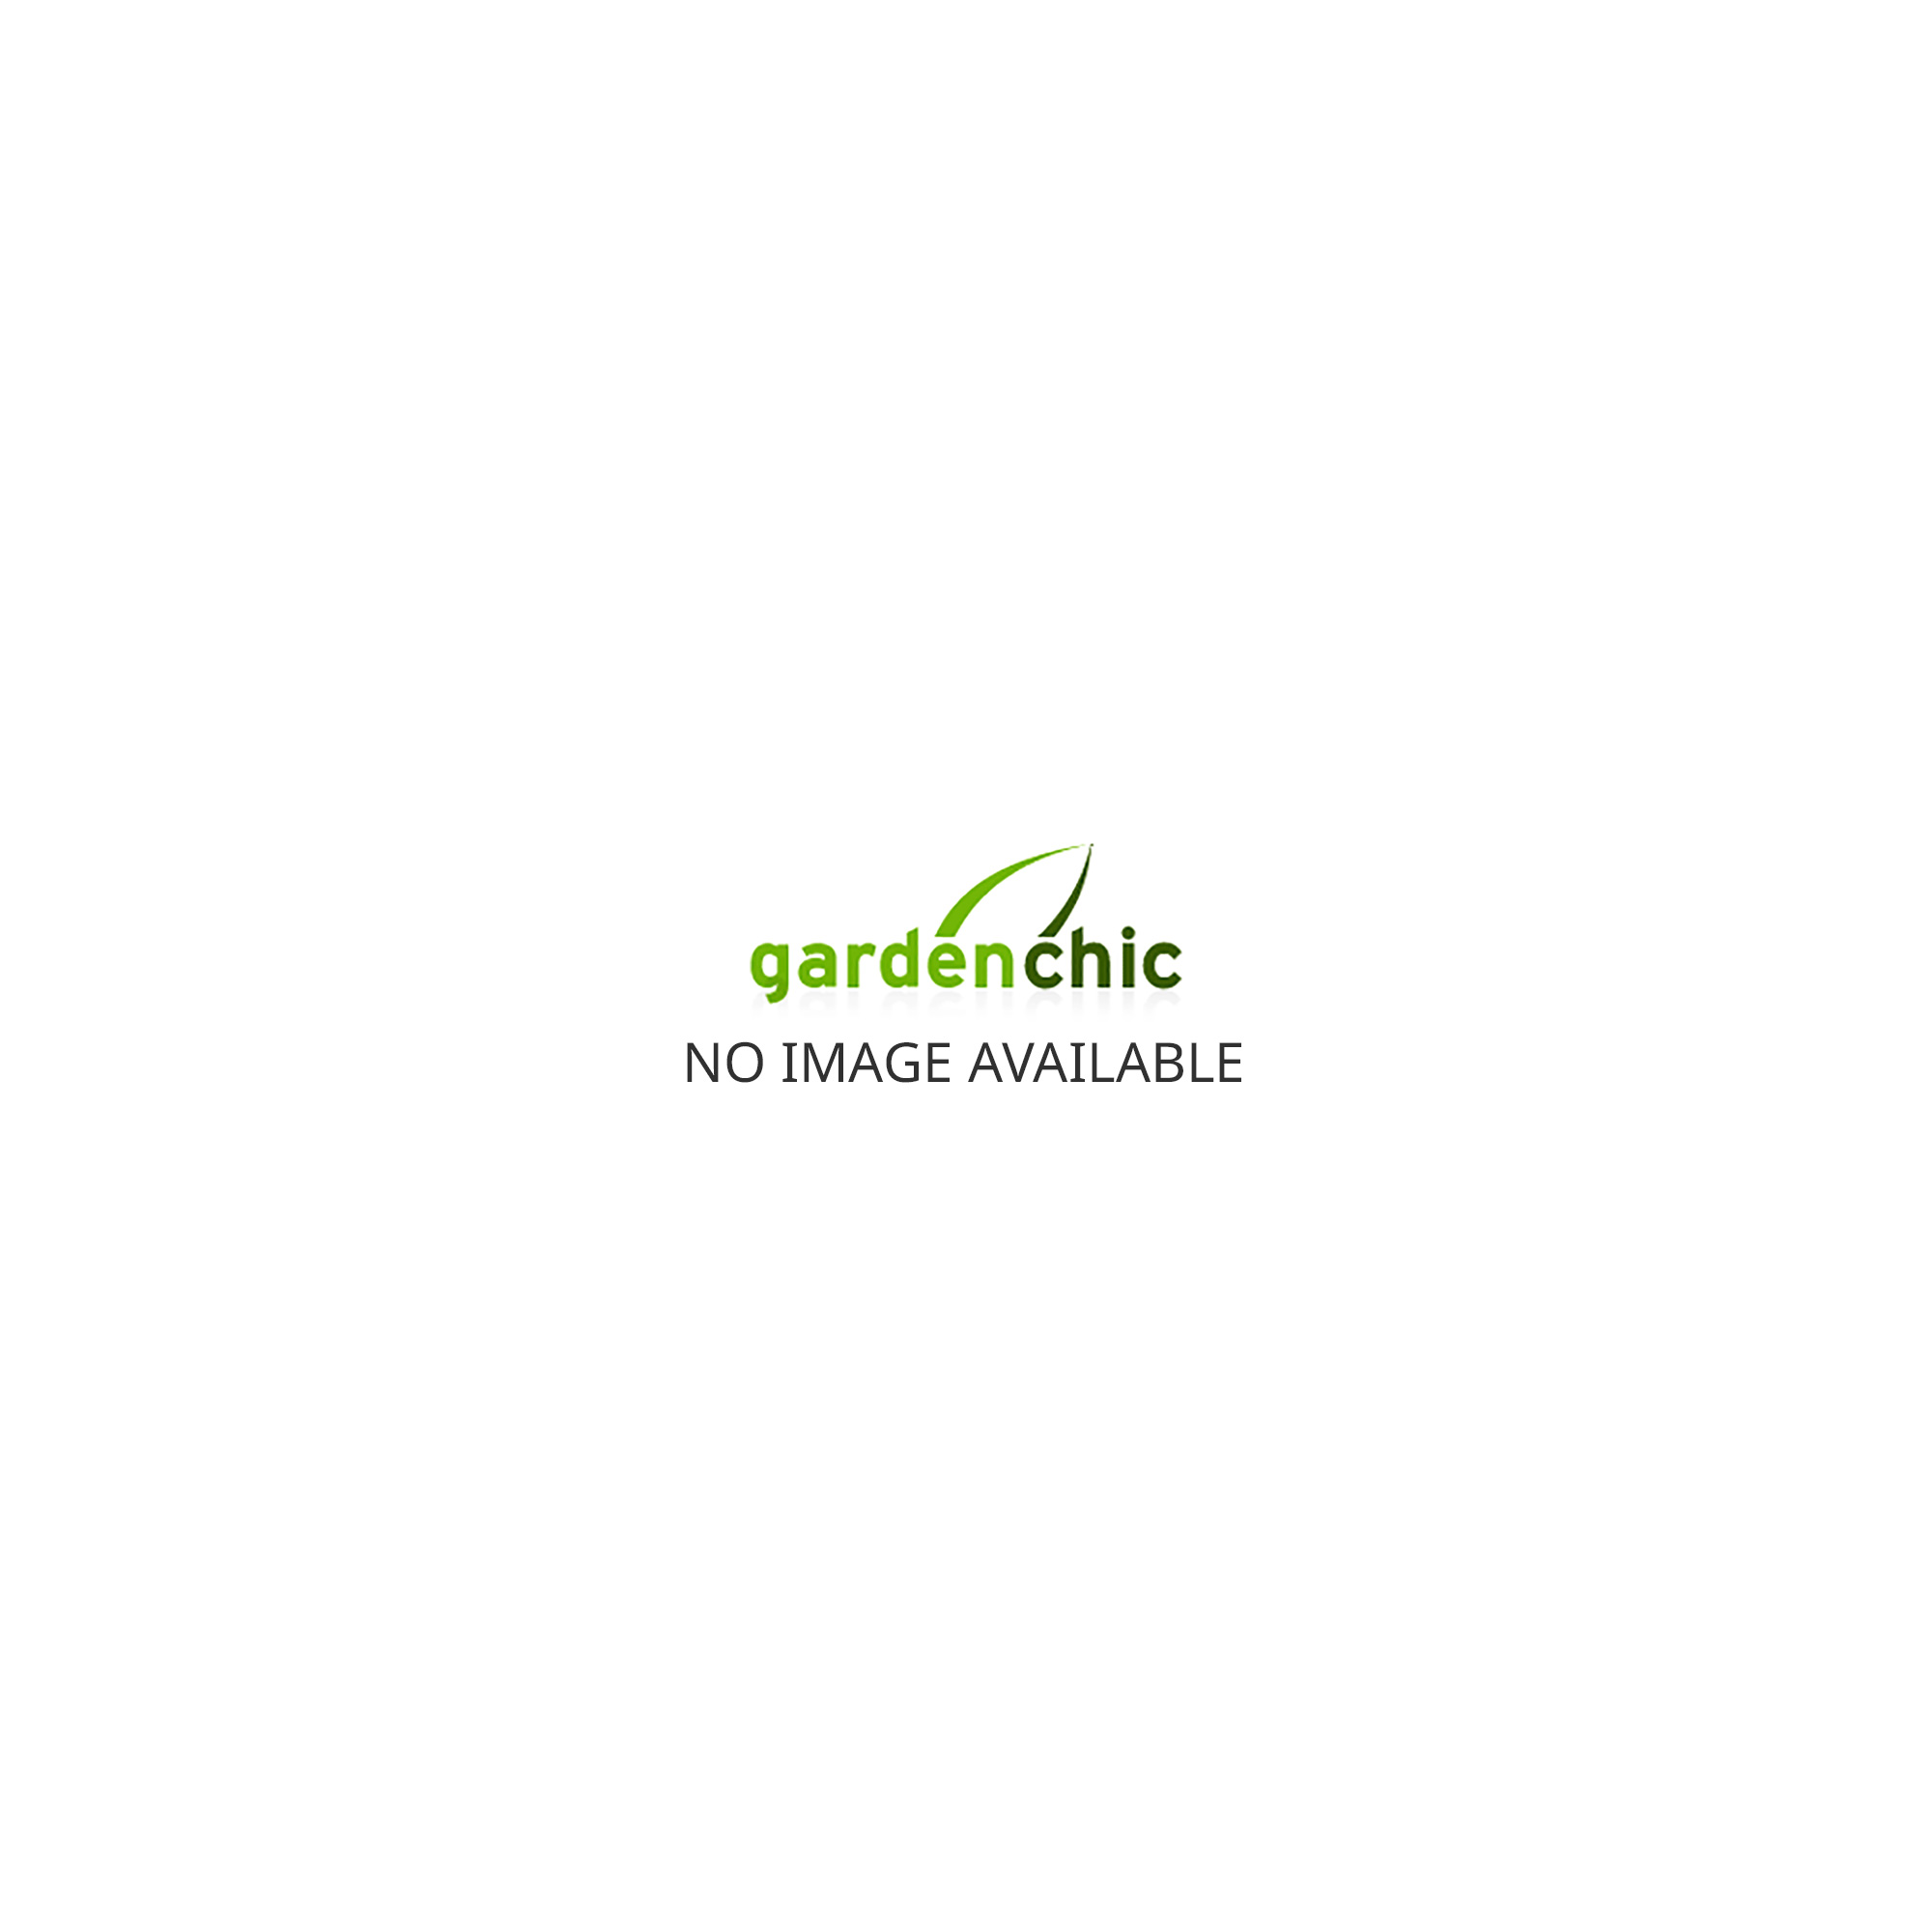 IDA 900 Wall Garden 4ft x 2ft Greenhouse - Silver FREE Matching Base until APRIL 2018